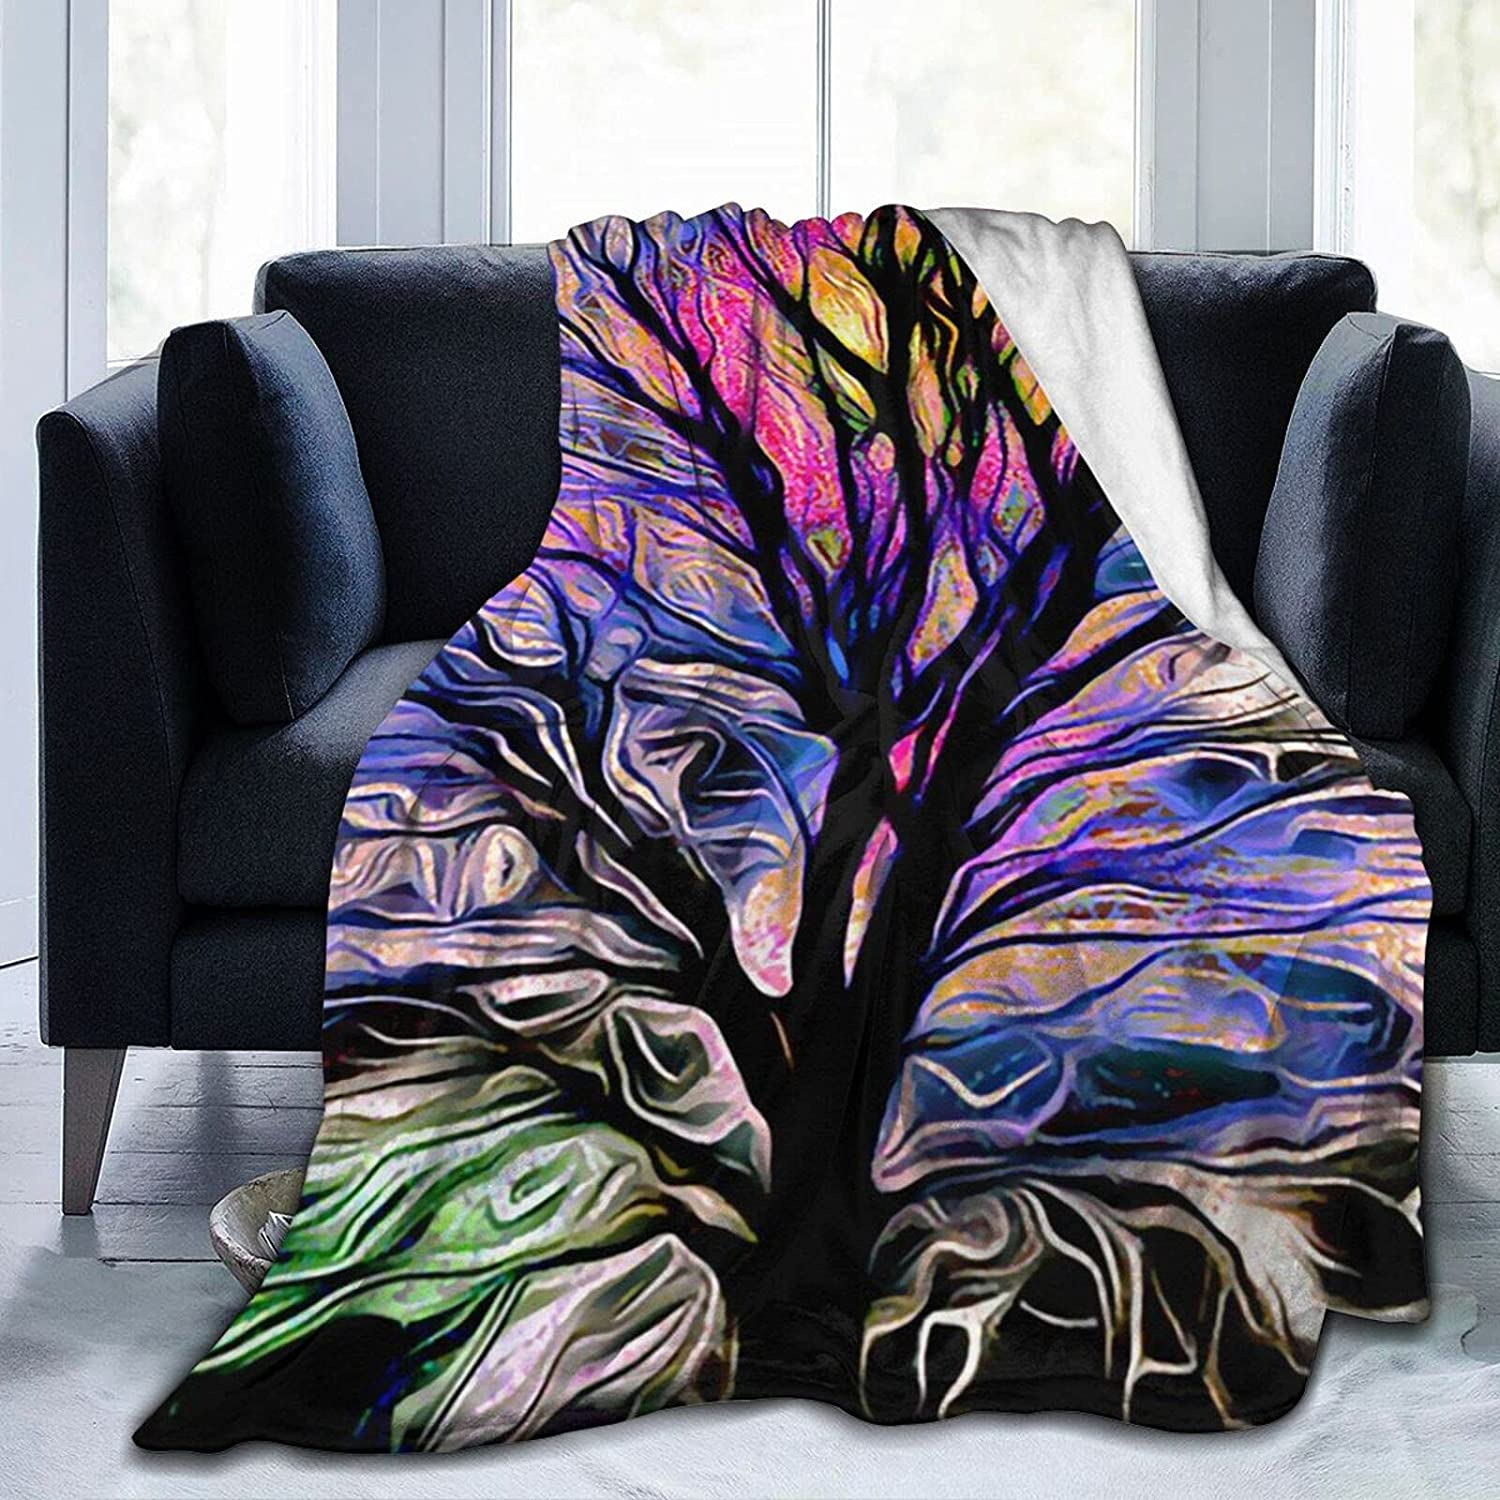 MMHOME Fleece Blanket Colorful Life National products Tree 5 ☆ very popular Inc Throw 50x40